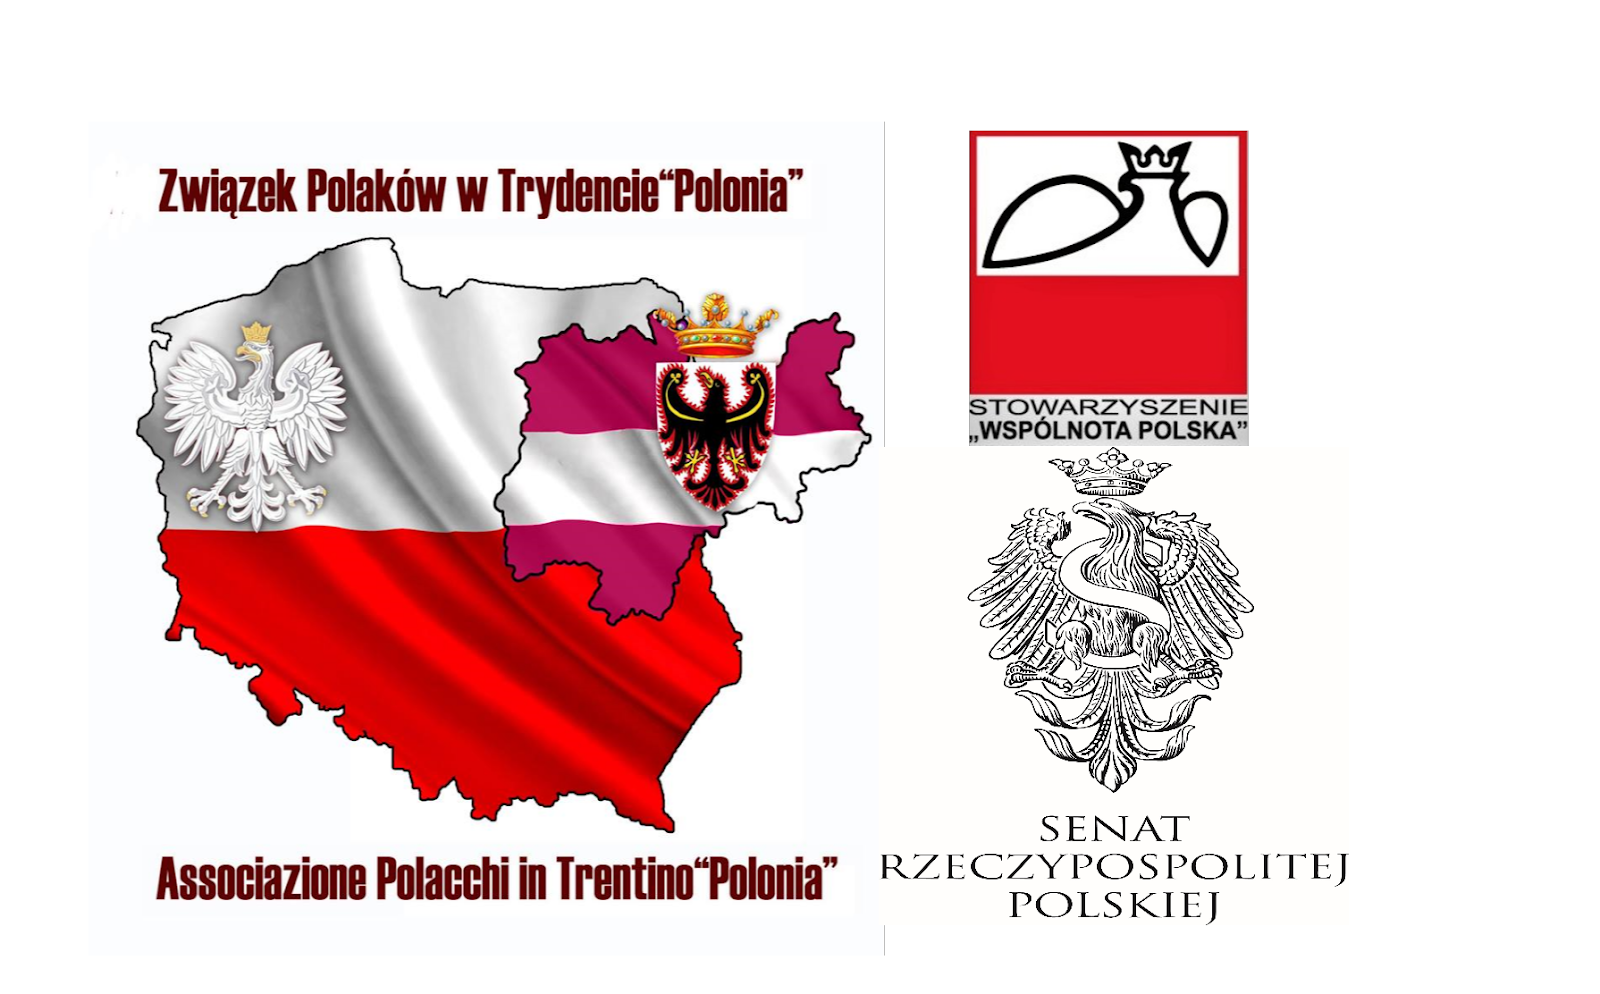 Associazione Polacchi nel Trentino - Związek Polaków w Trydencie - POLONIA